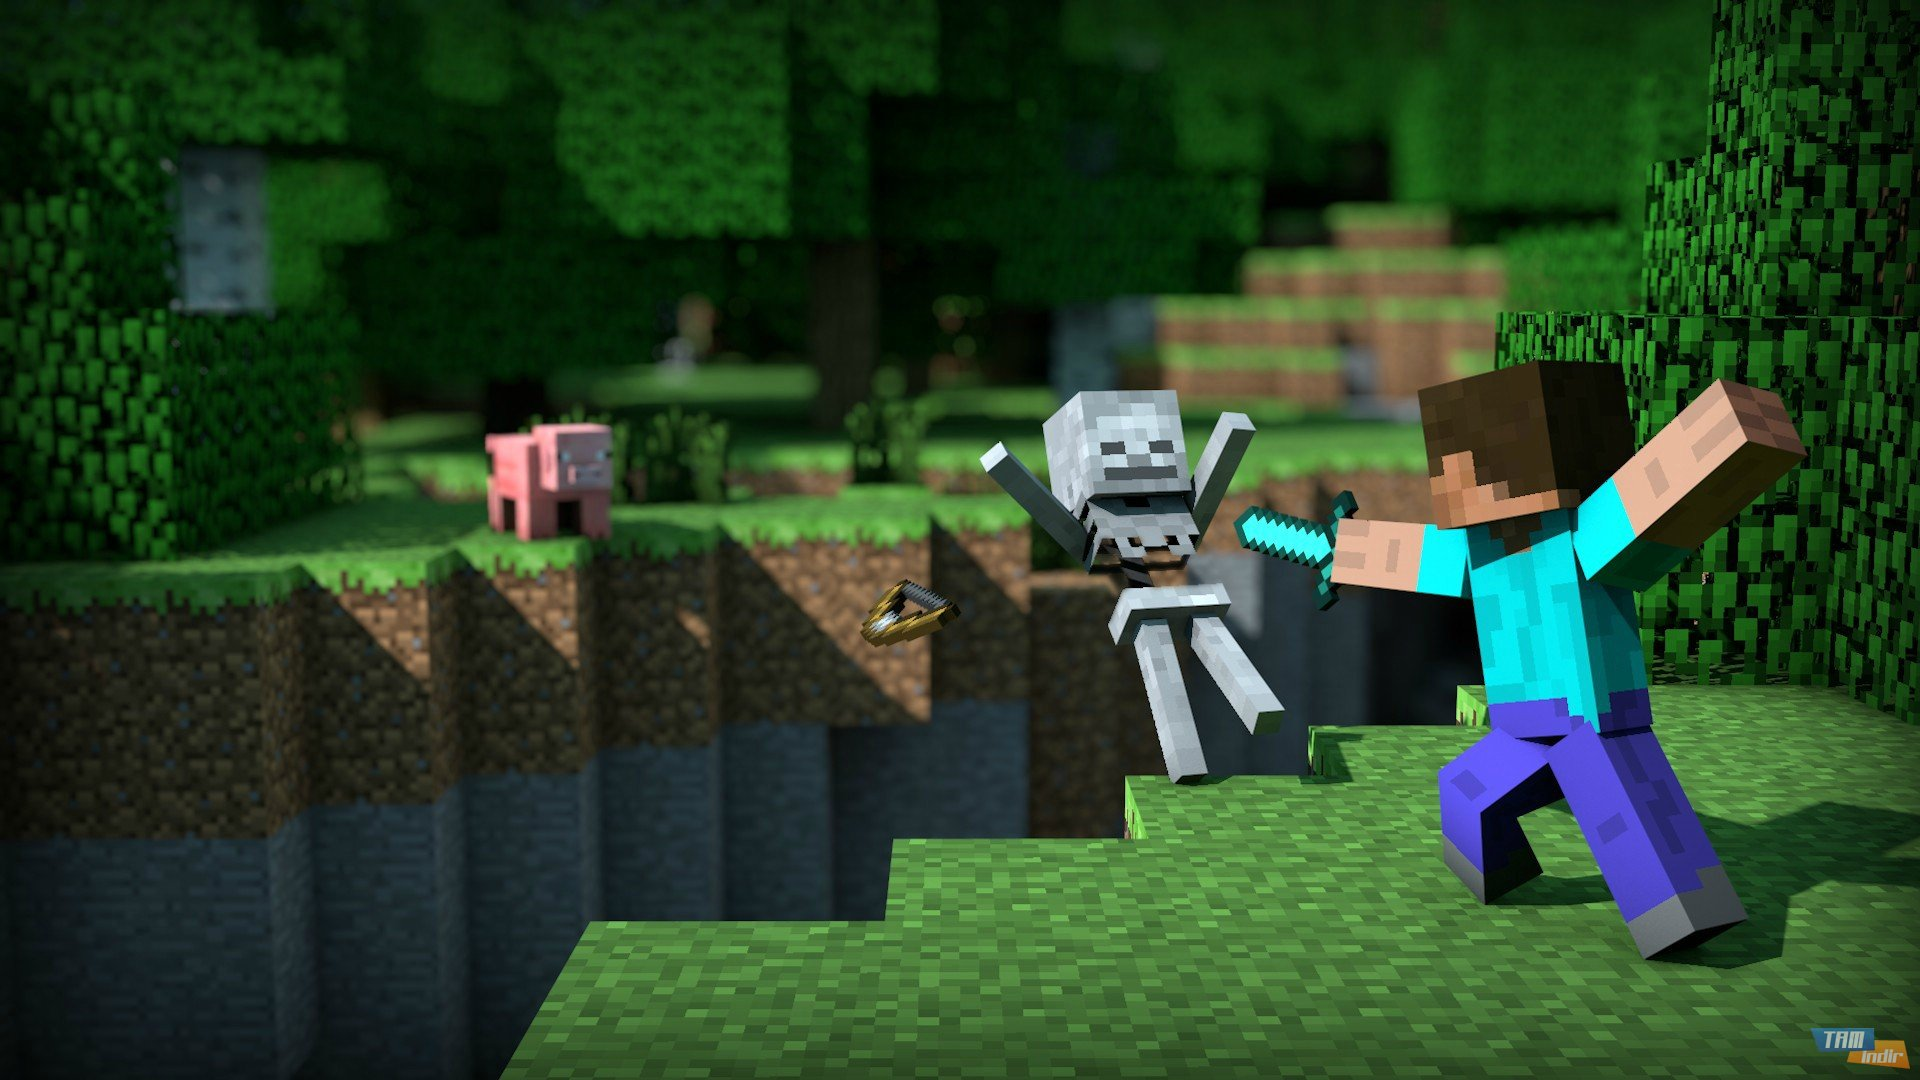 awesome minecraft hd desktop wallpapers 1080p backgrounds 1920x1080 1920x1080